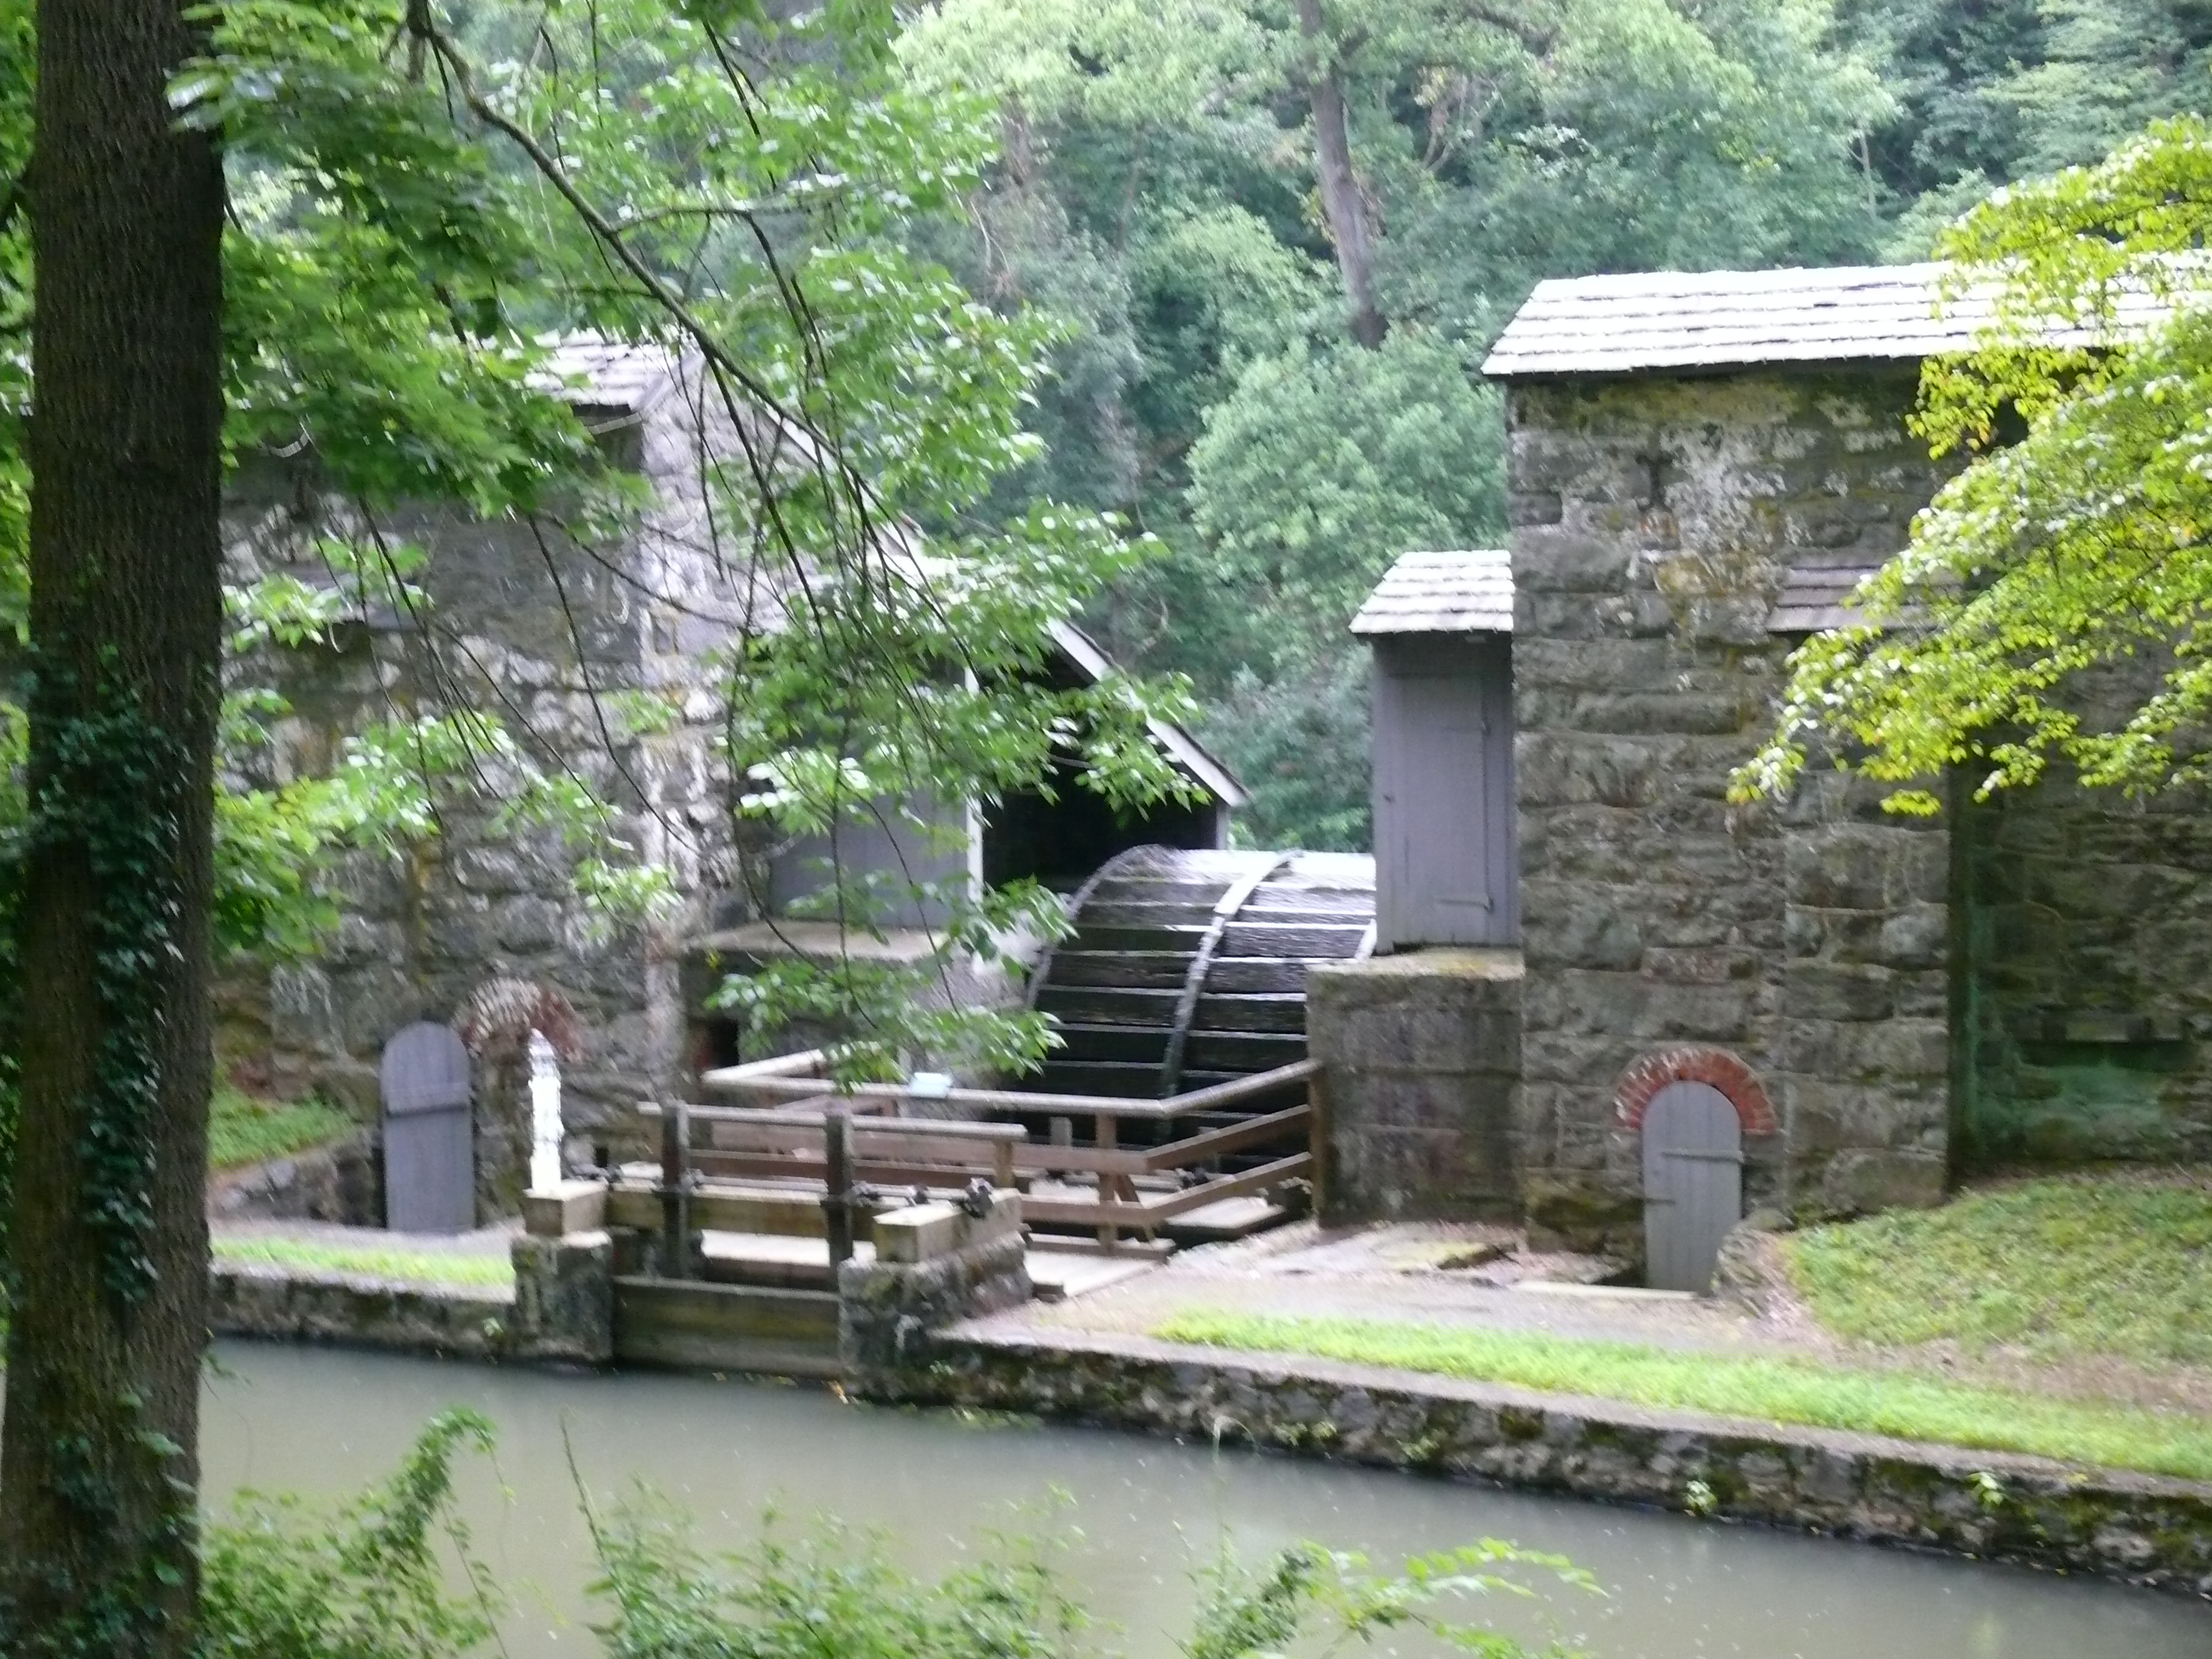 The water wheel still turns, and shows how the mills once operated.